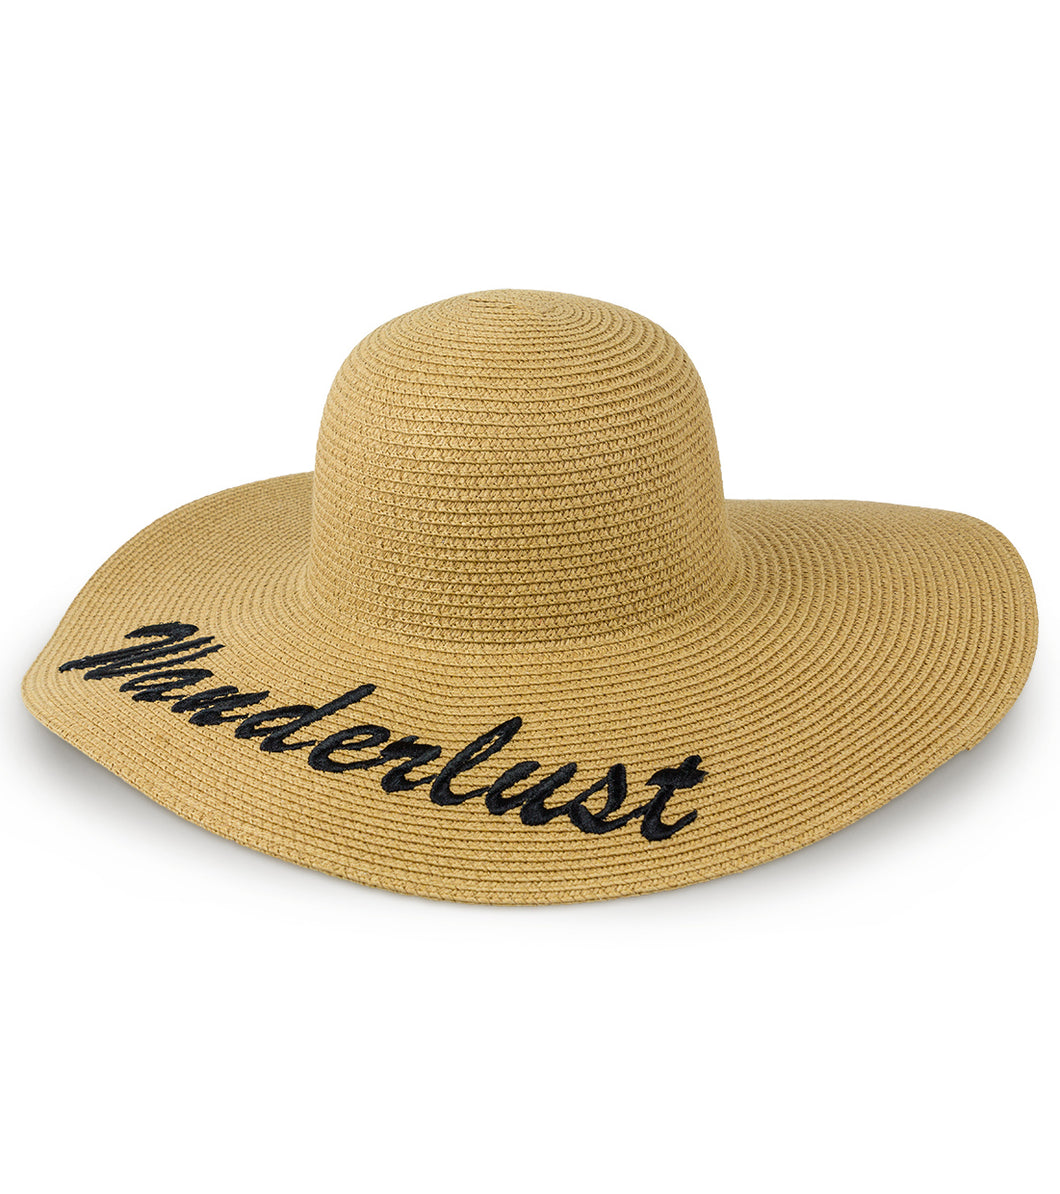 Wanderlust Straw Floppy Hat - Just Jamie